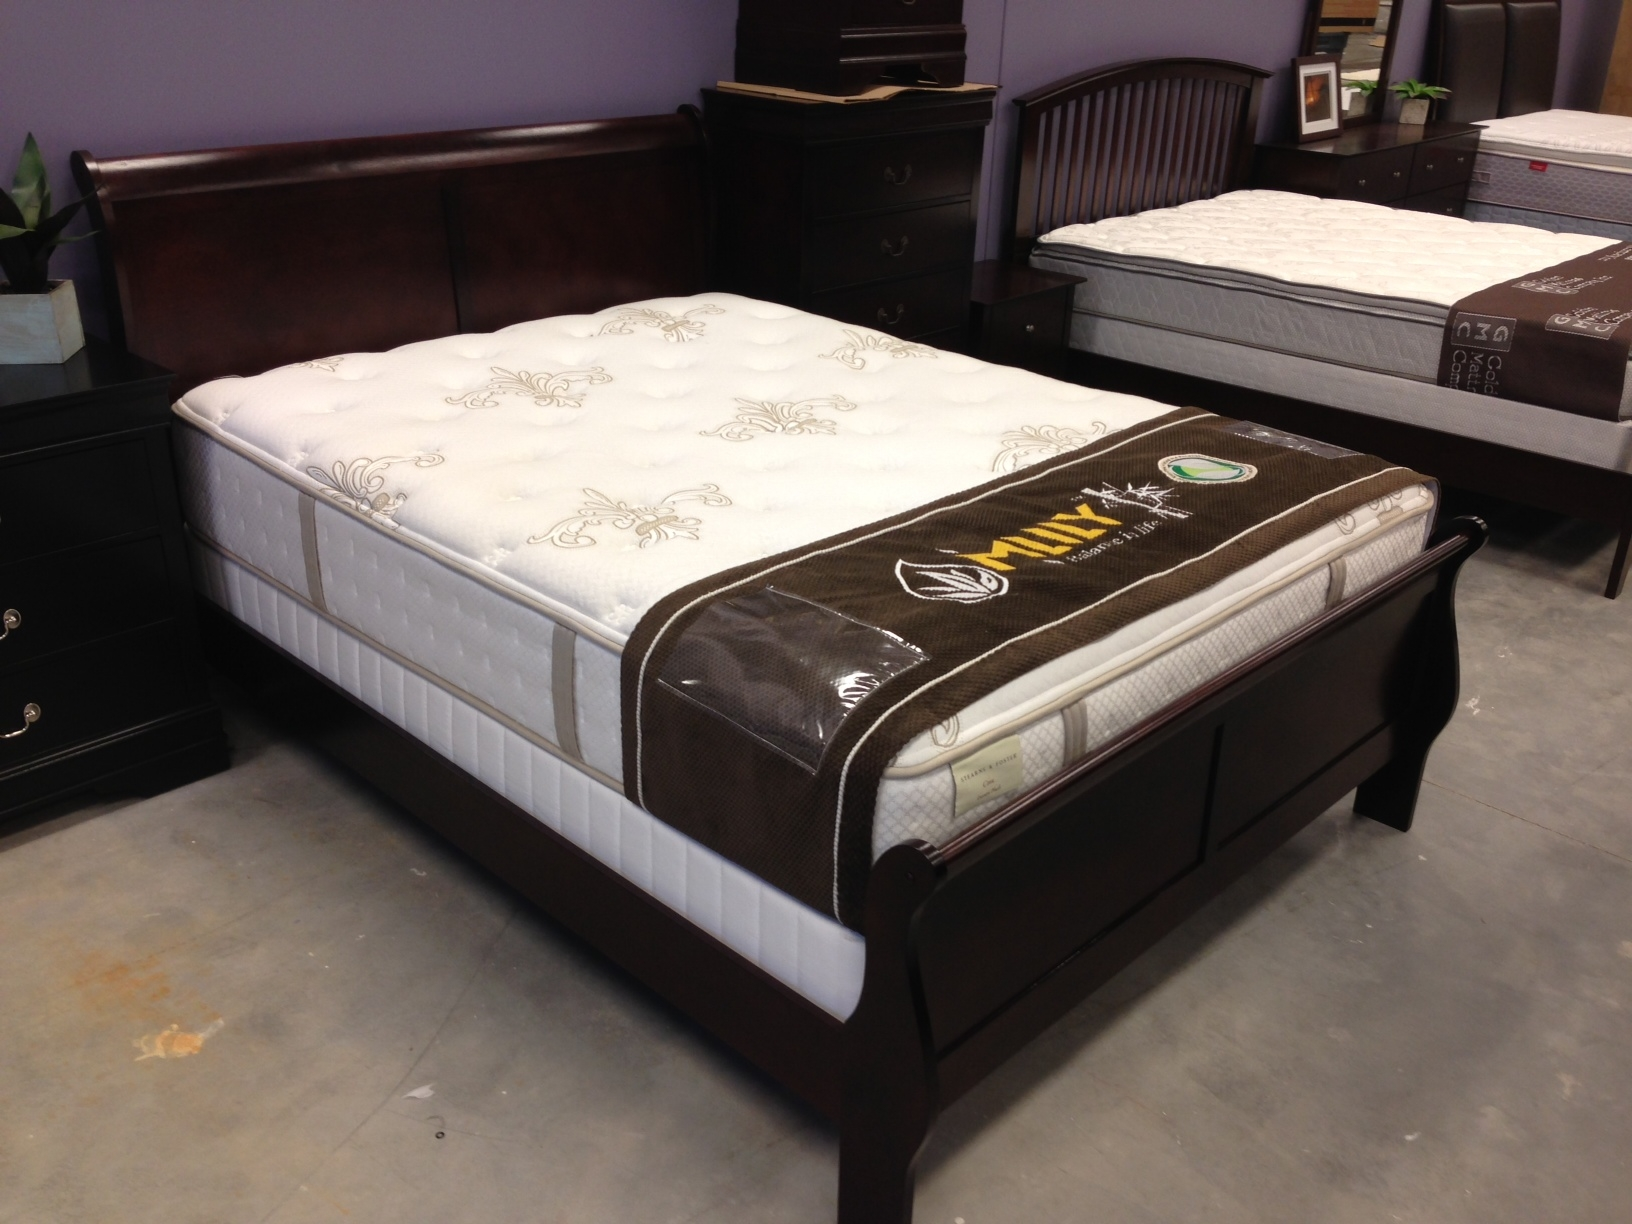 Coastal Bedding Outlet in Hardeeville, SC - Mattress Store ...